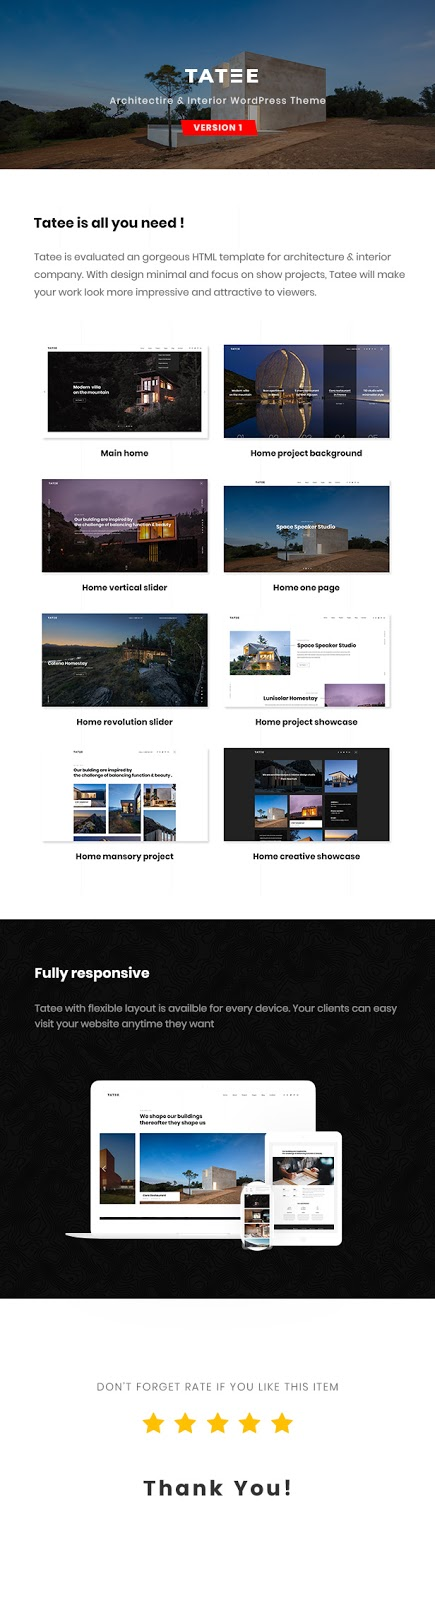 Architecture and Building Business WordPress Theme Review - Tatee